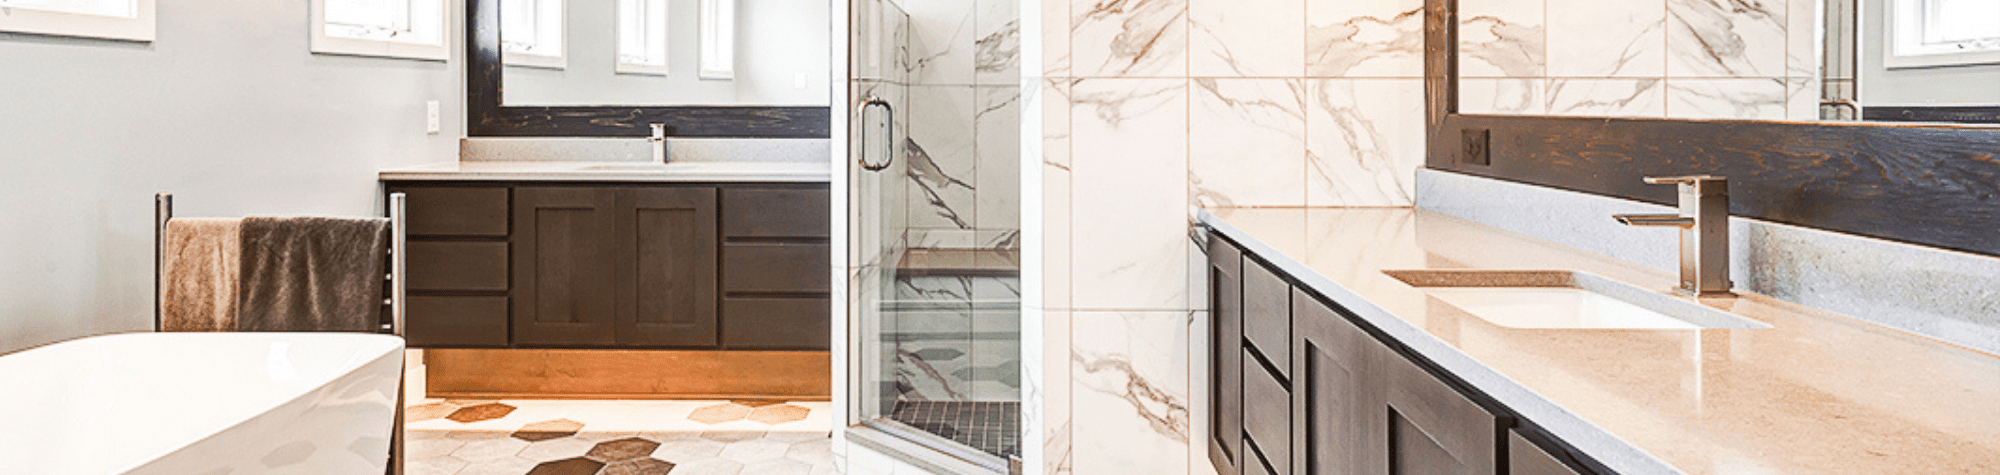 Bathroom Remodel Planning Guide: Design Guide and Tips